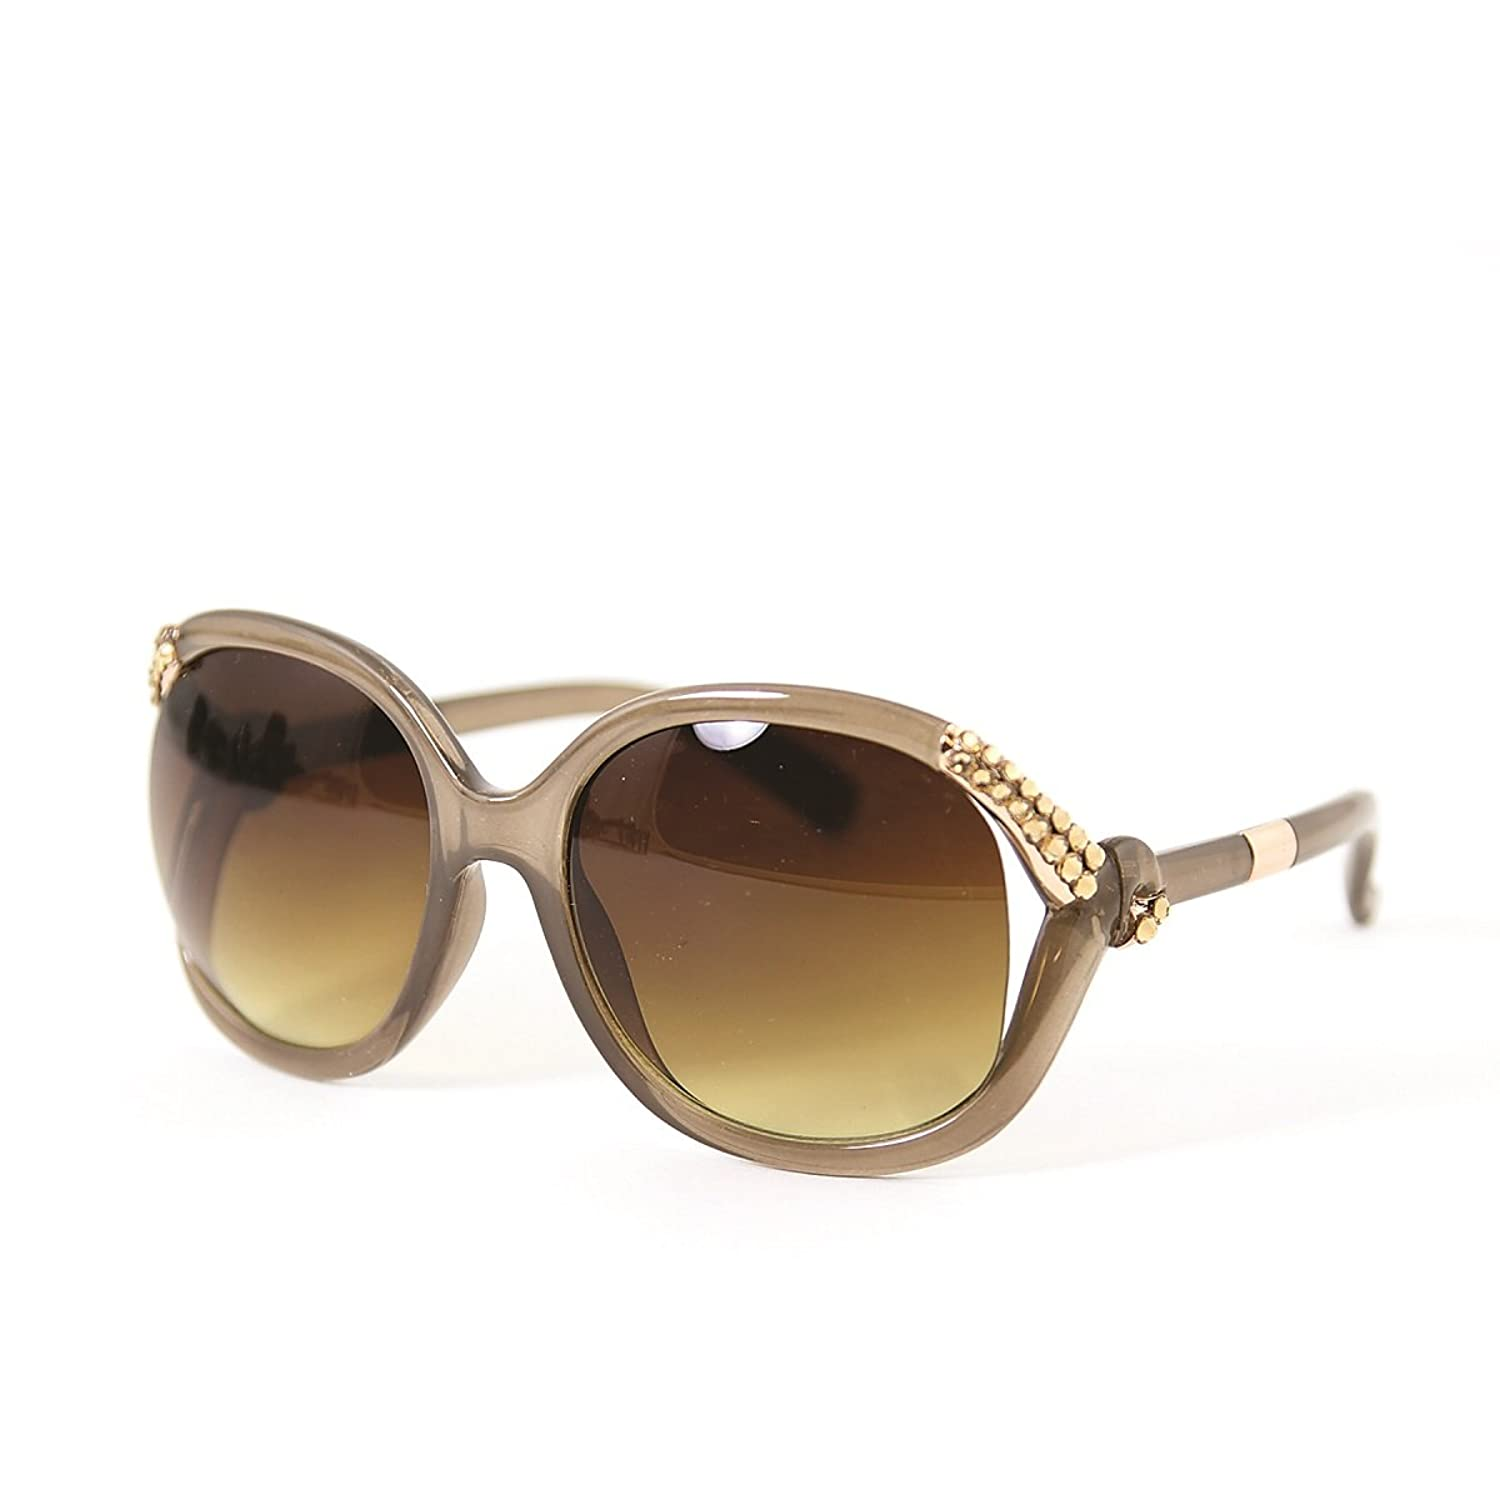 Fashion Oversized Sunglasses Made With Swarovski Elements